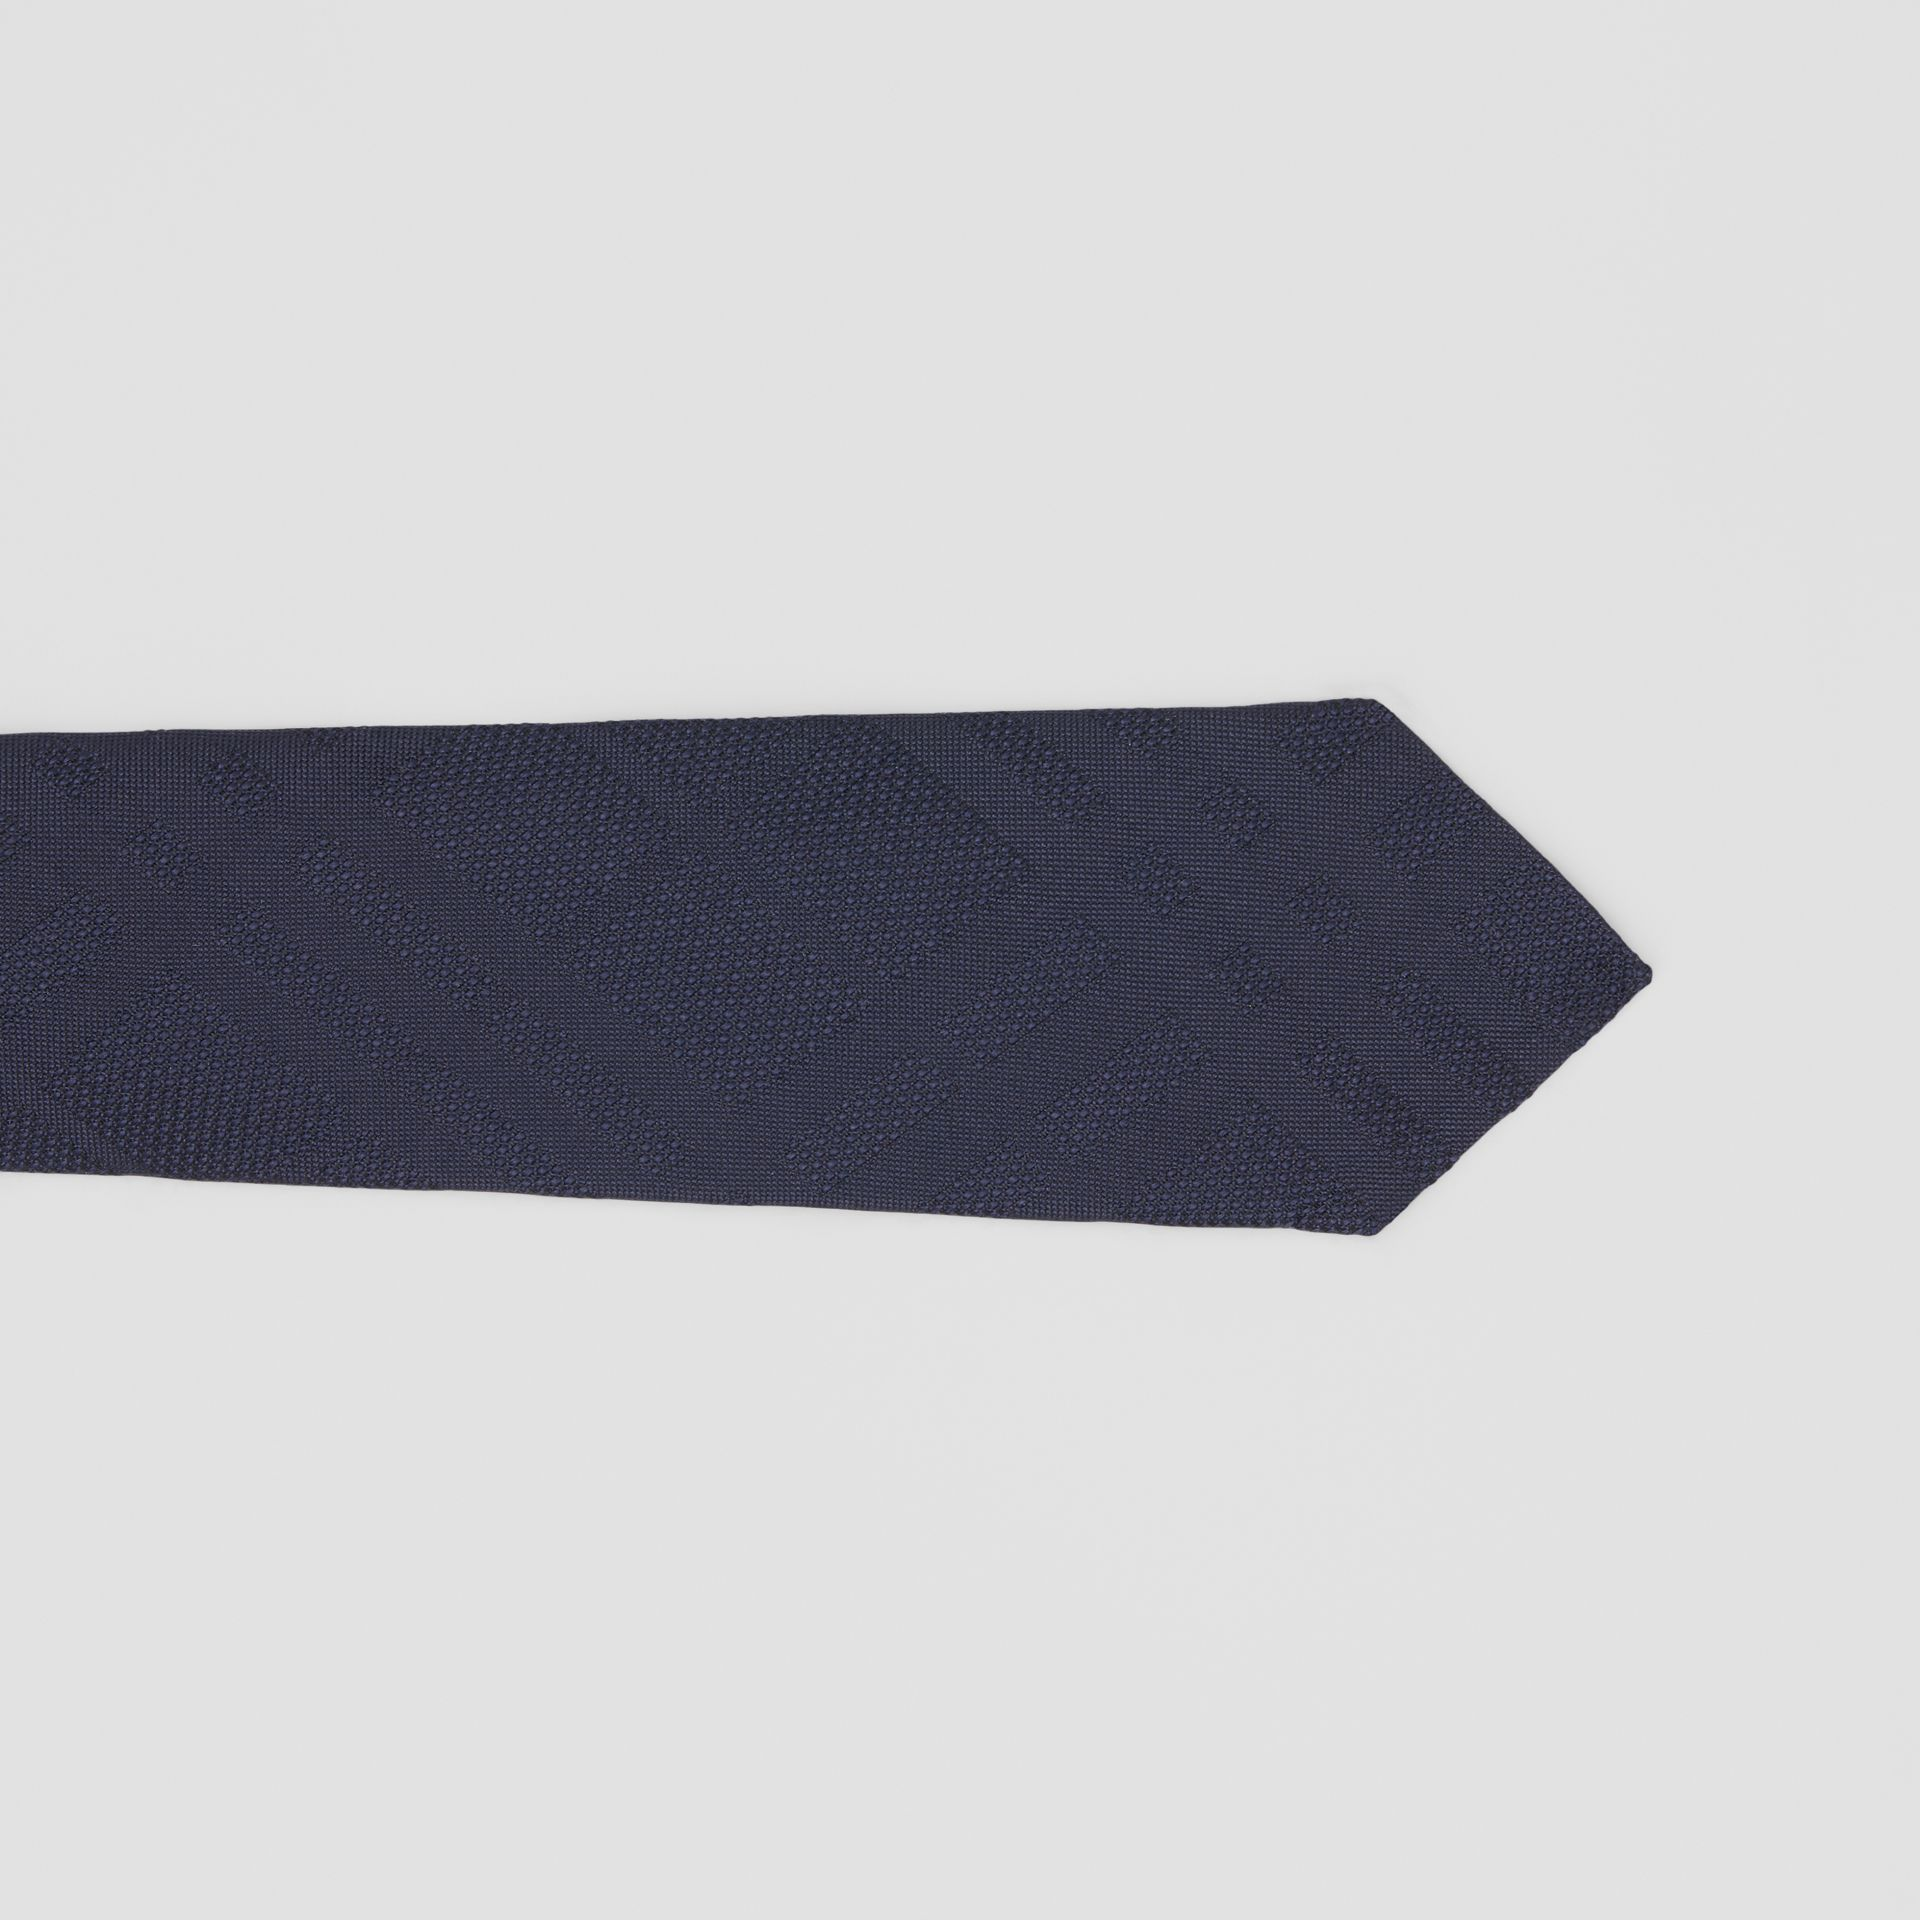 Classic Cut Check Silk Jacquard Tie in Navy - Men | Burberry - gallery image 1